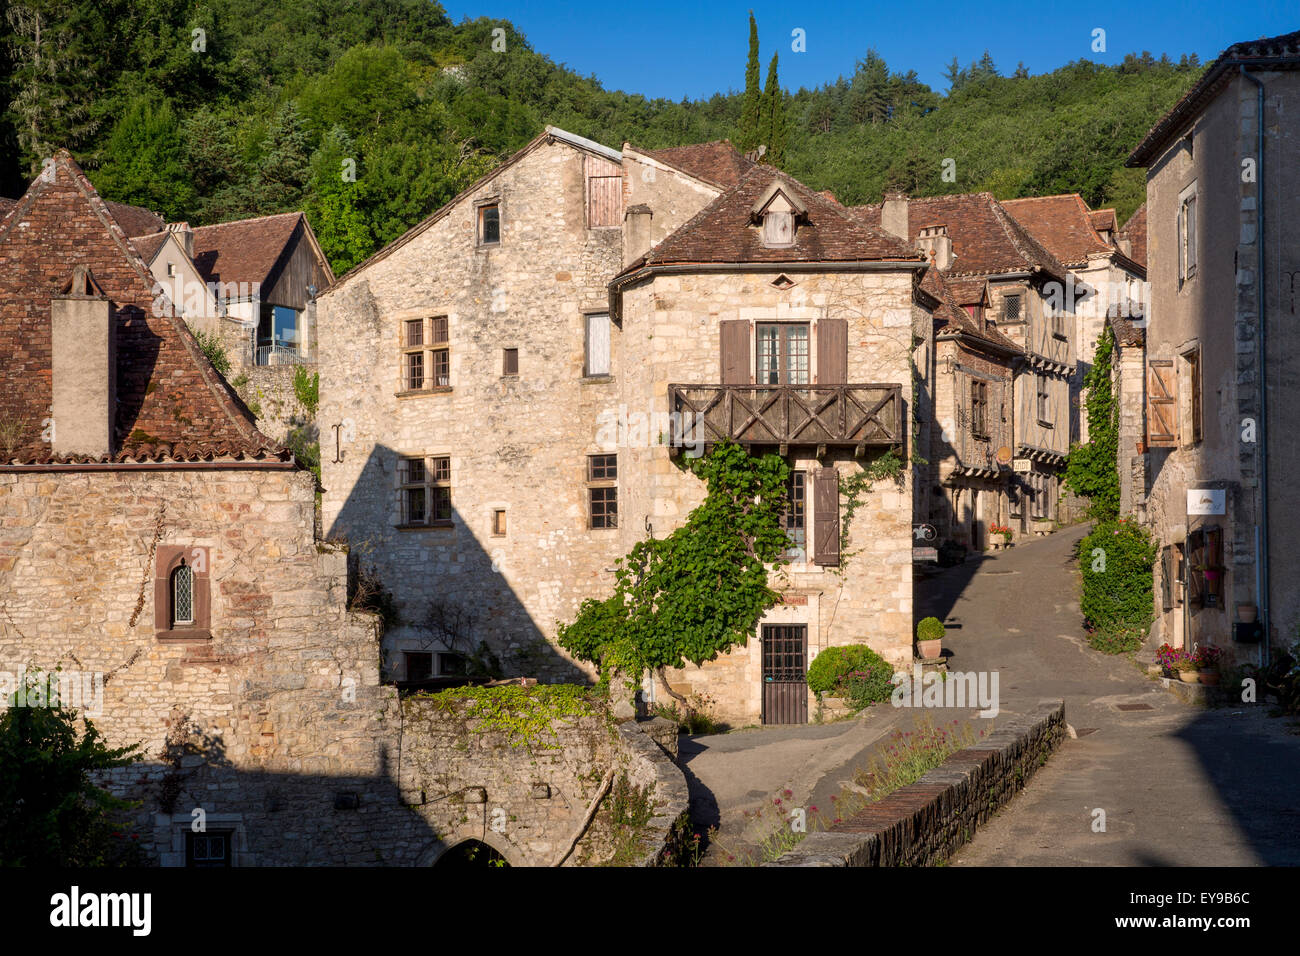 Early morning in Saint-Cirq-Lapopie, Quercy, Midi-Pyrenees, France - Stock Image